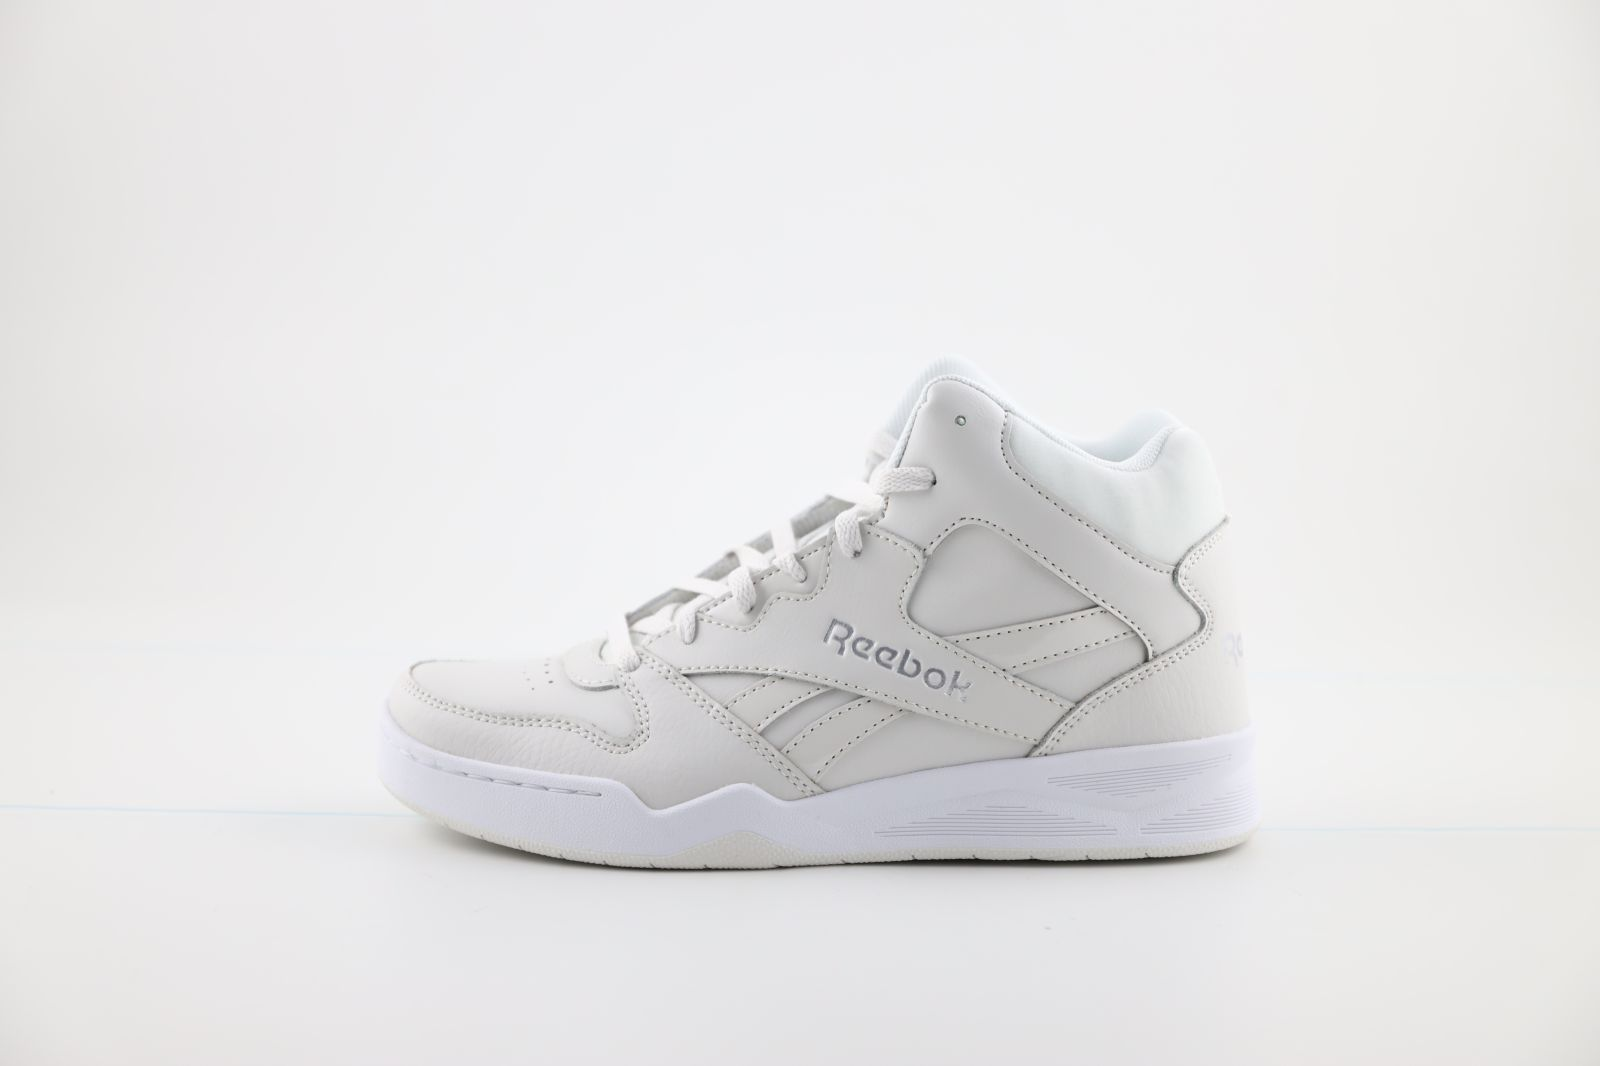 Reebok Basket Blanc dames (Royal BB - FW7157) - Marques à Suivre